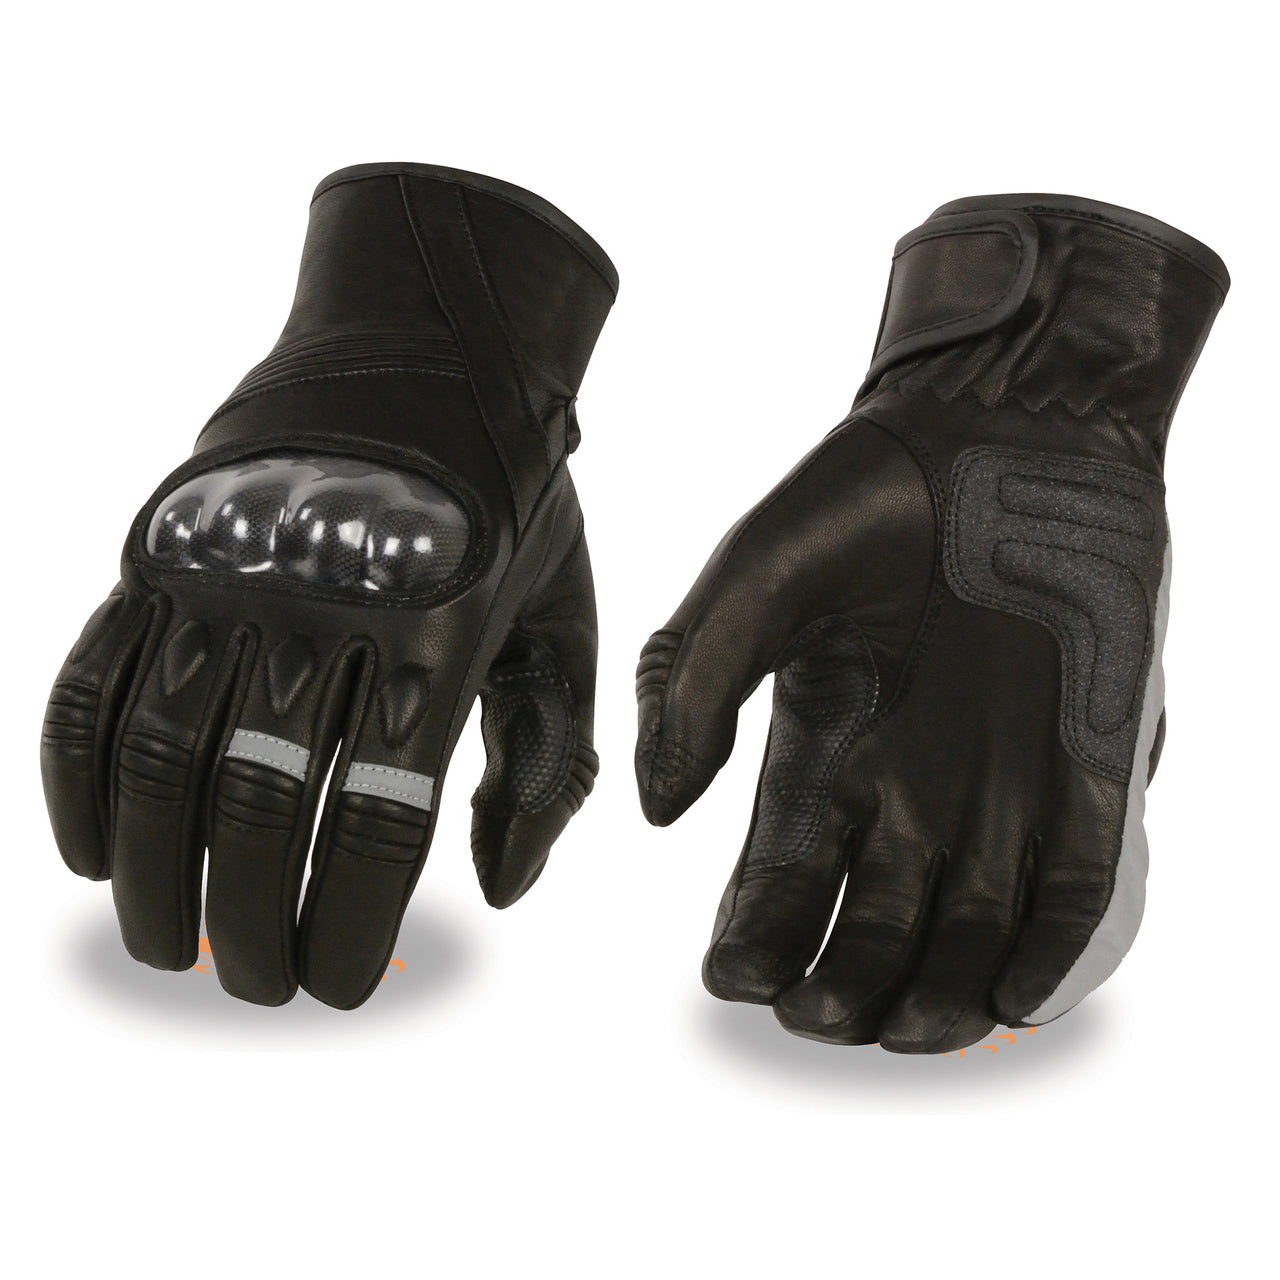 Men's Leather Racer Glove w/ Hard Knuckles & Elasticized Fingers - HighwayLeather